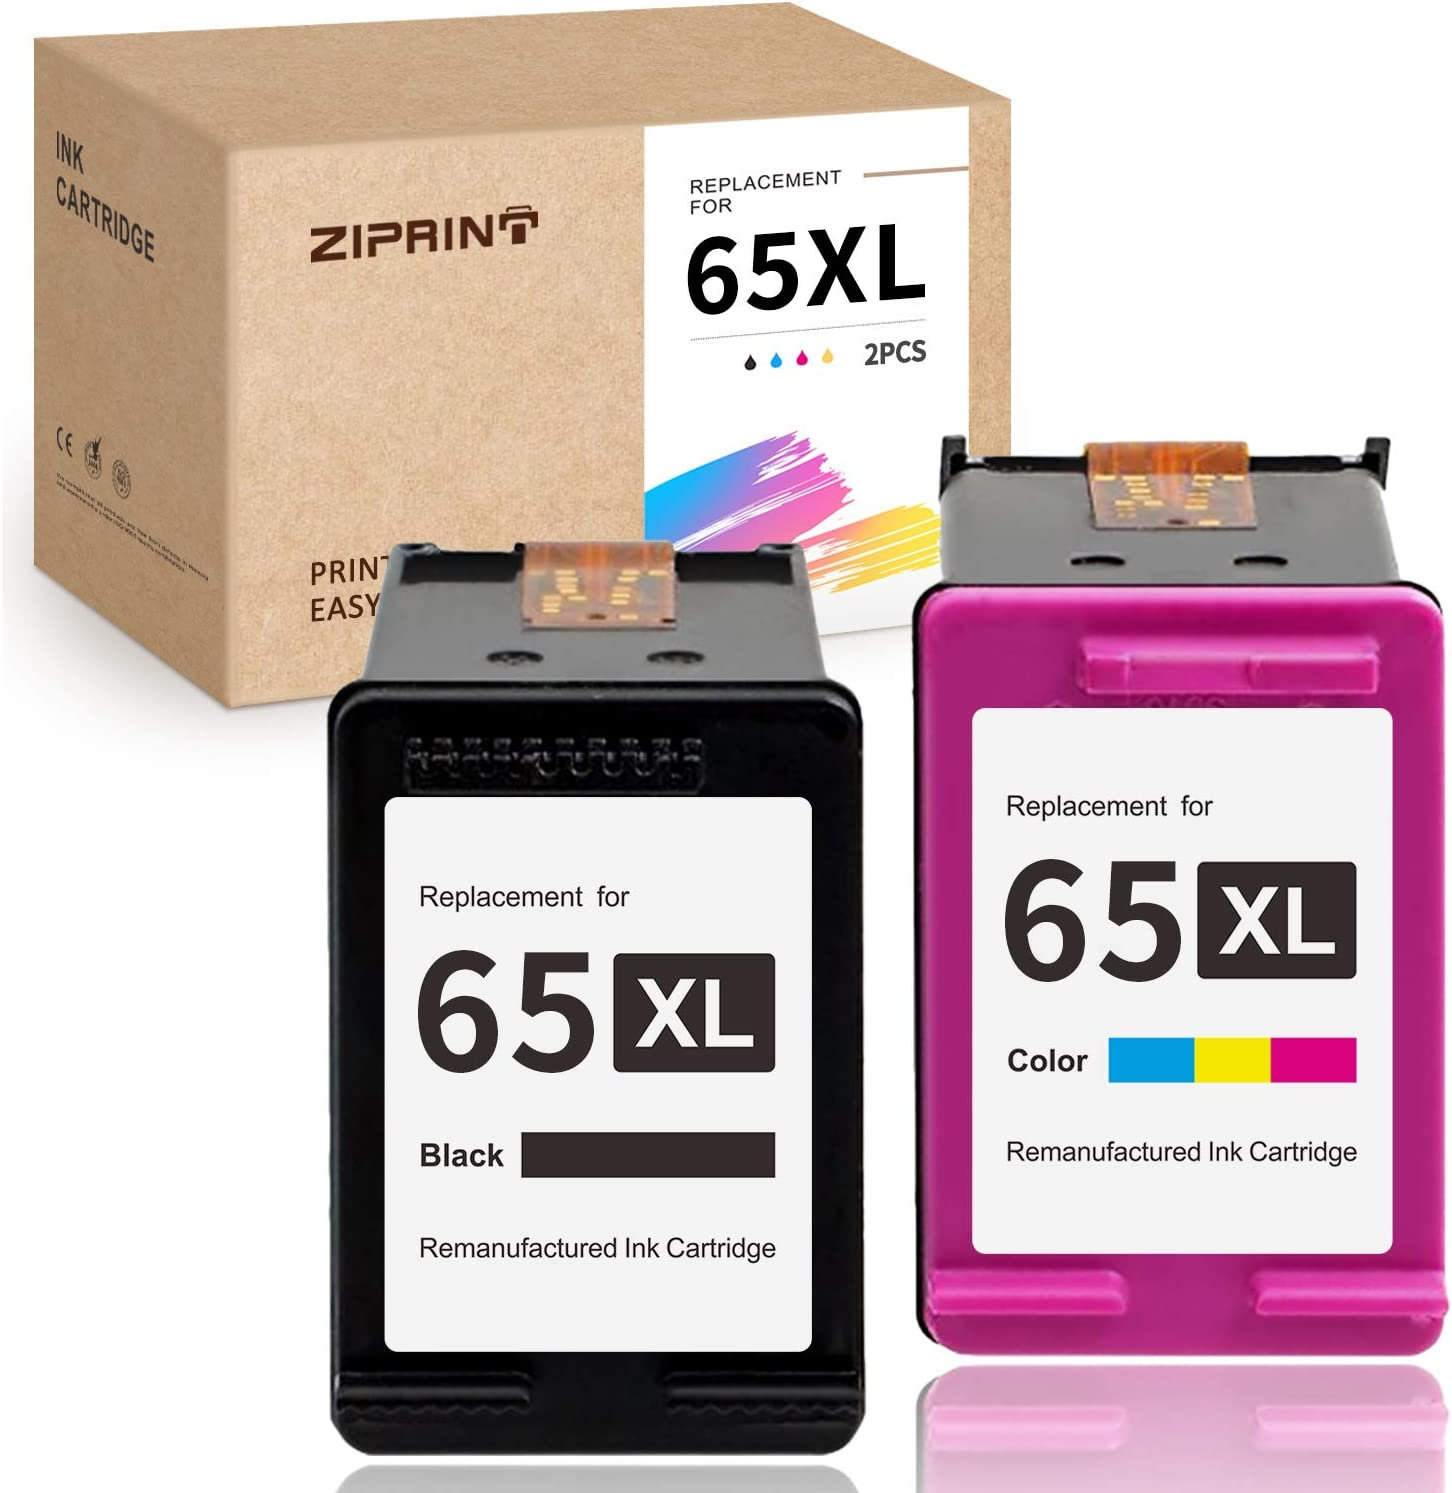 ZIPRINT Remanufactured Ink Cartridge Replacement for HP 65XL 65 XL Work with HP Envy 5055 5052 5058 DeskJet 3755 3752 2652 2655 2622 3720 3722 2624 3758 AMP 100 Printer (Black + Tri-Color, 2-Pack)